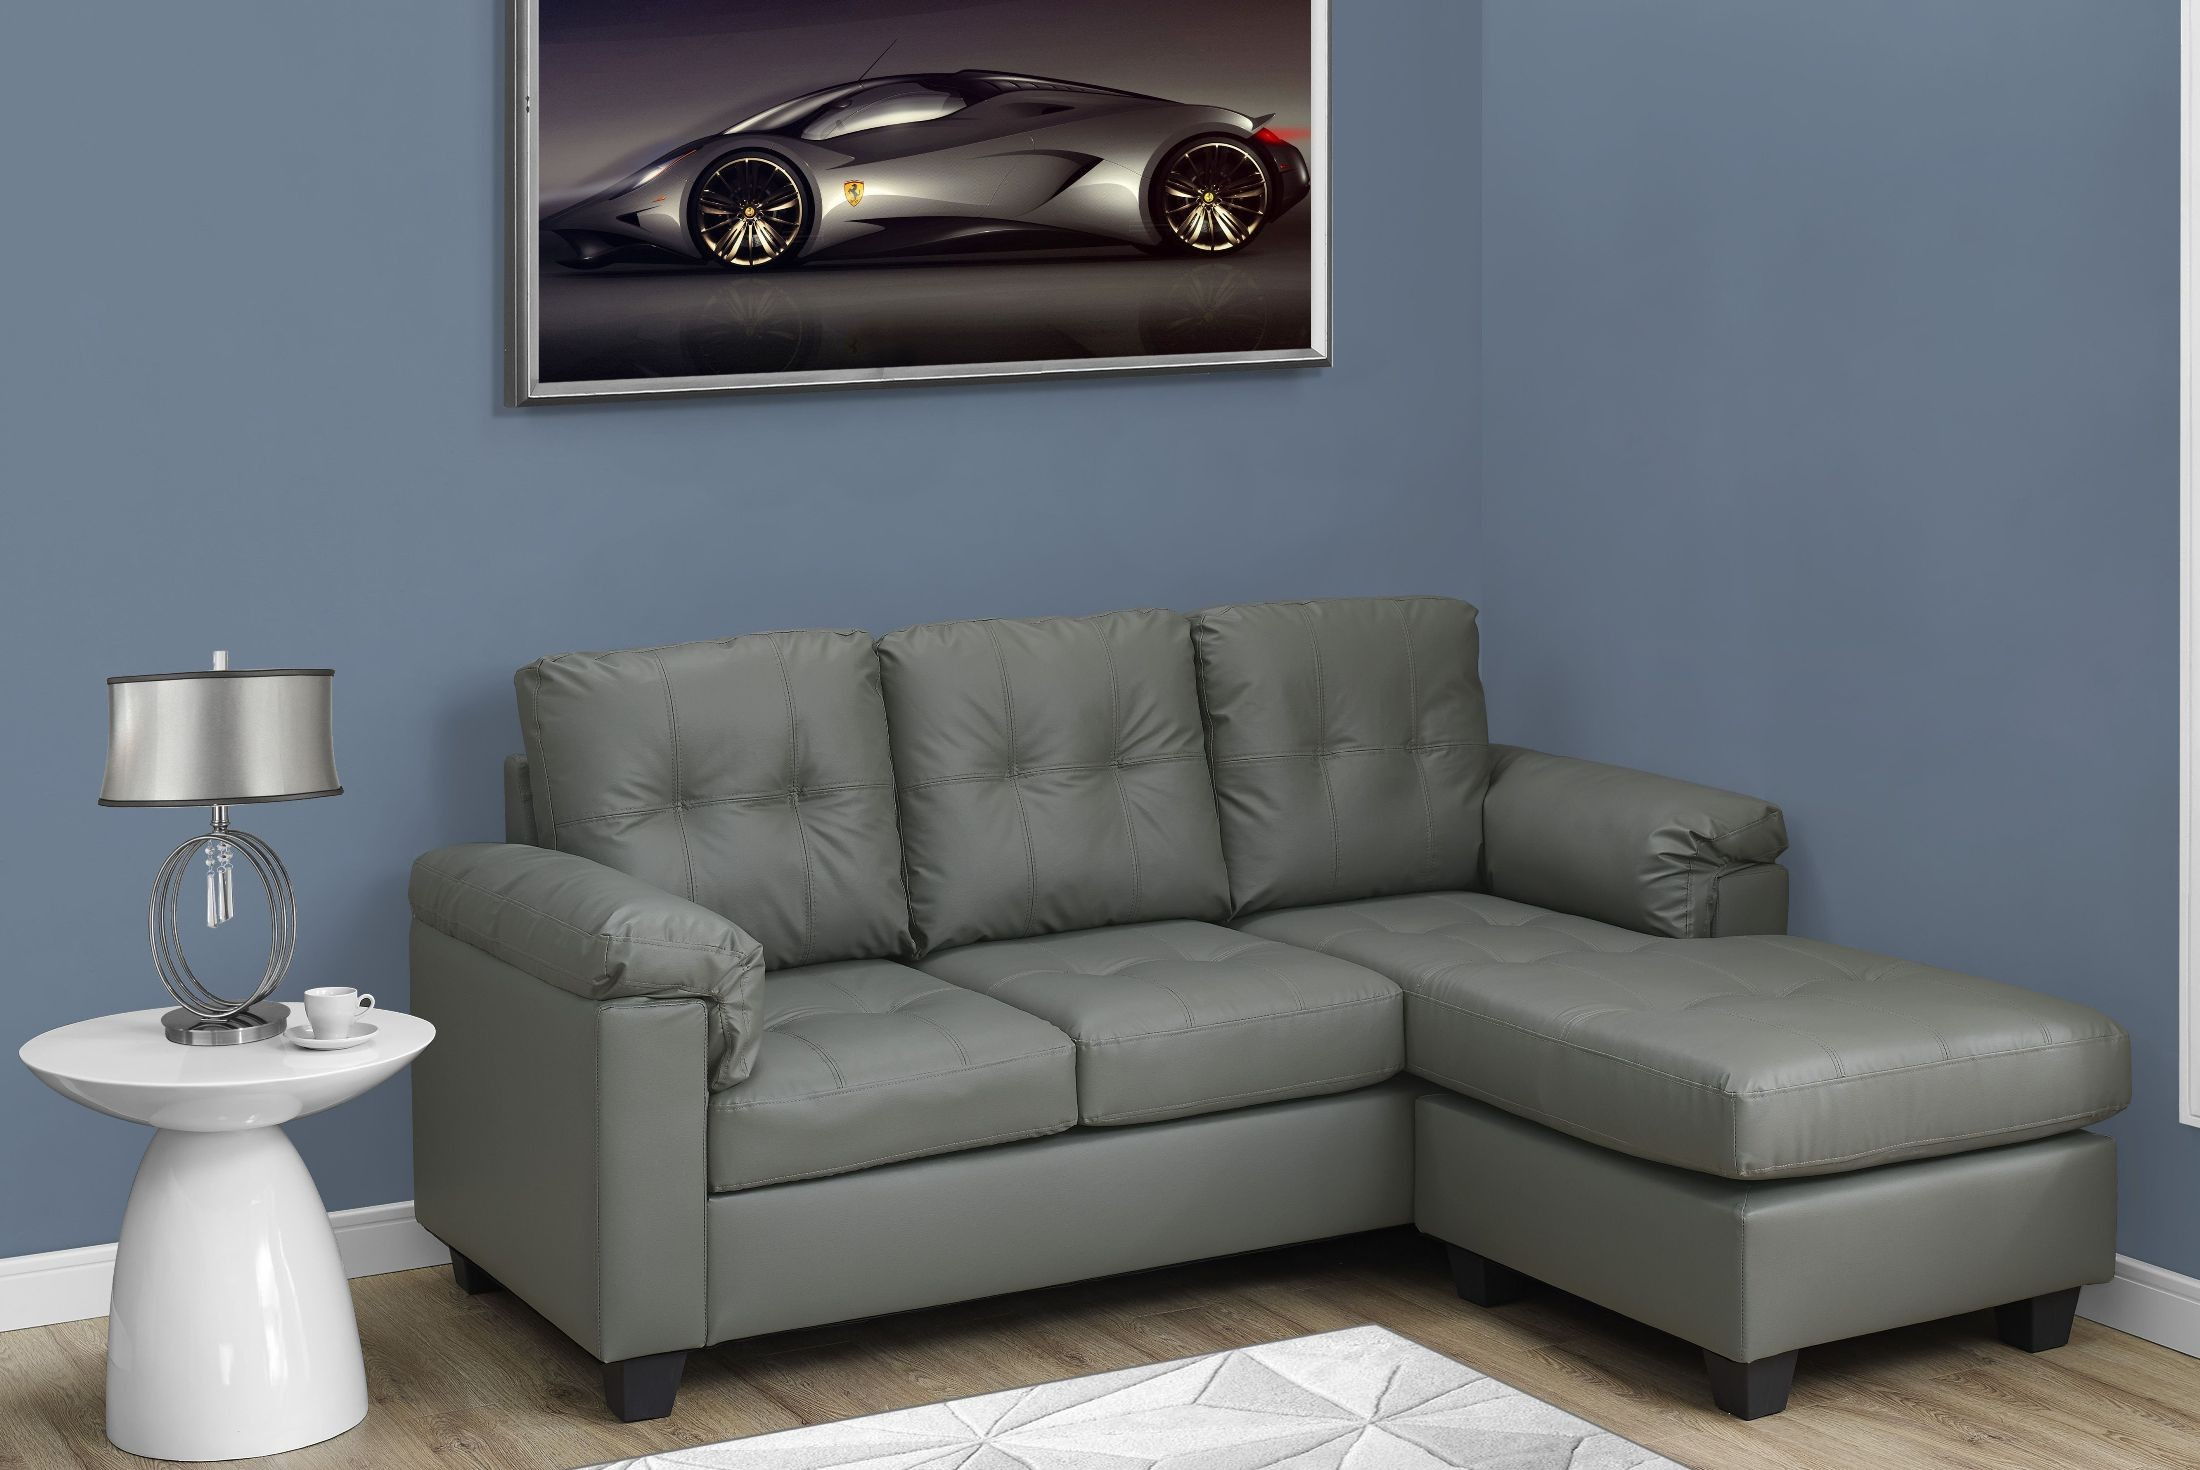 light grey leather sofa latest wooden designs in india gray bonded lounger 8390lg monarch